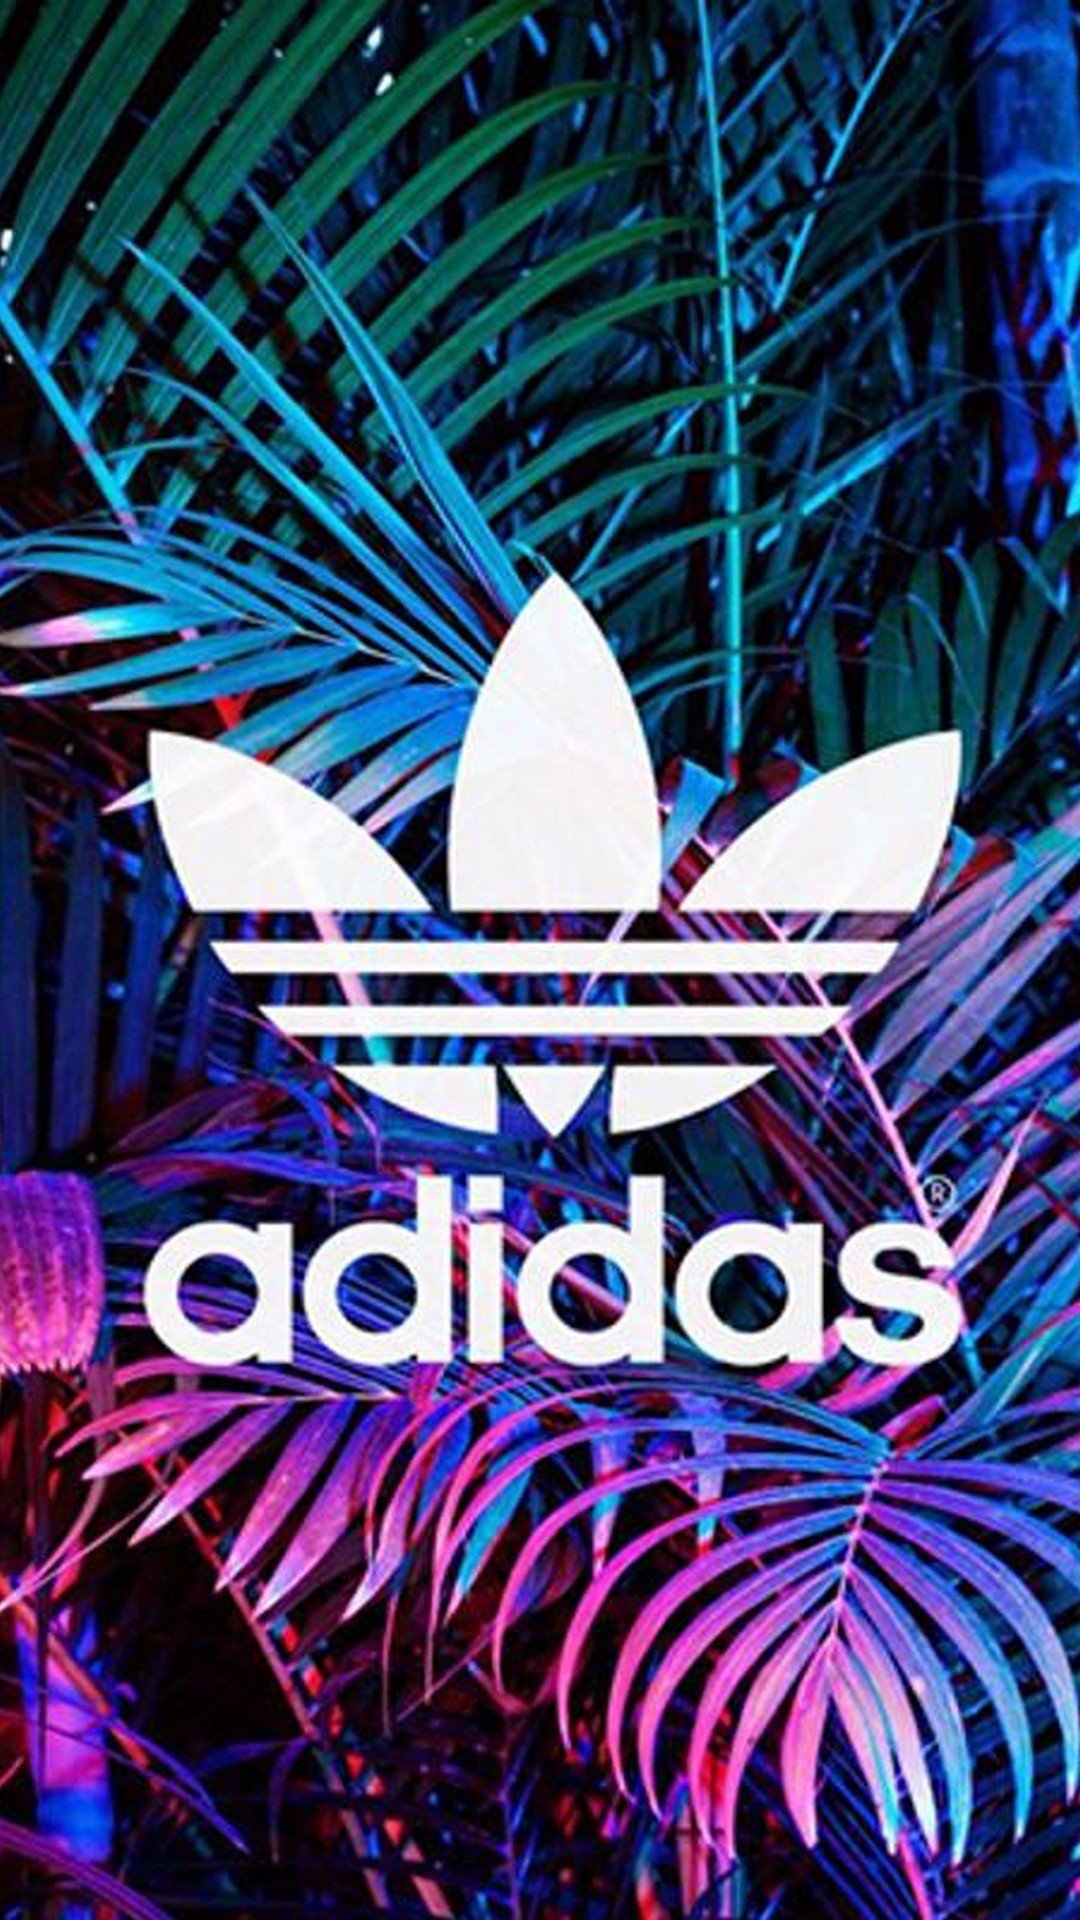 Adidas Backgrounds For Android   2019 Android Wallpapers 1080x1920